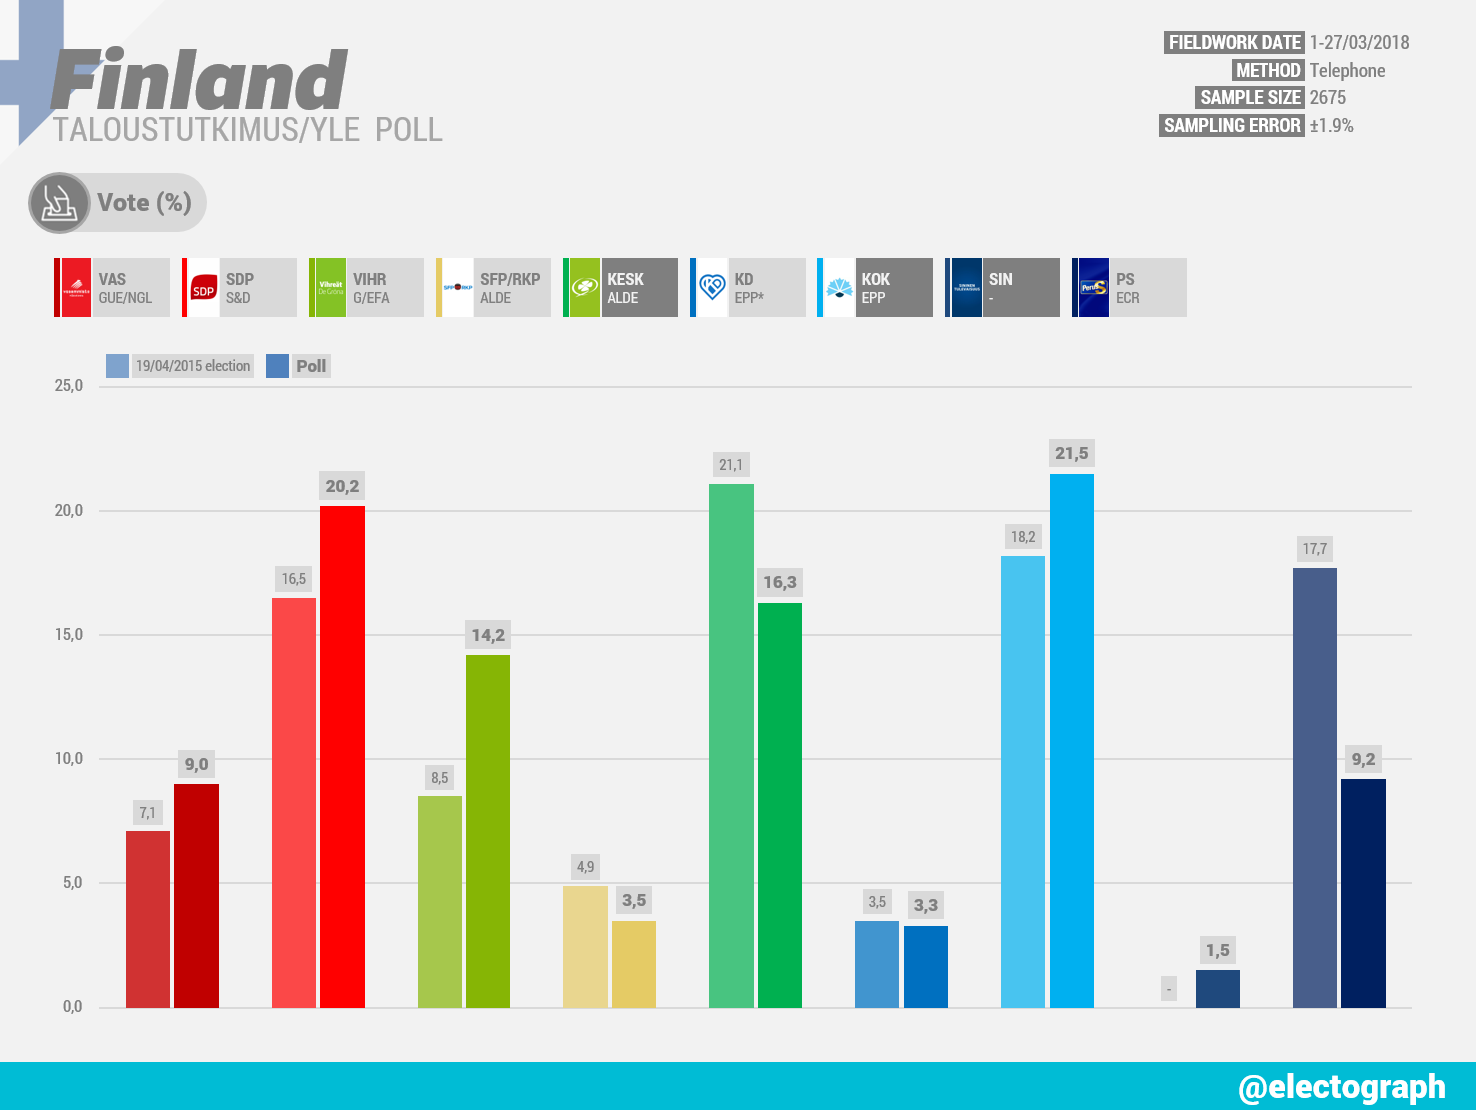 FINLAND Taloustutkimus poll chart for Yle, March 2018